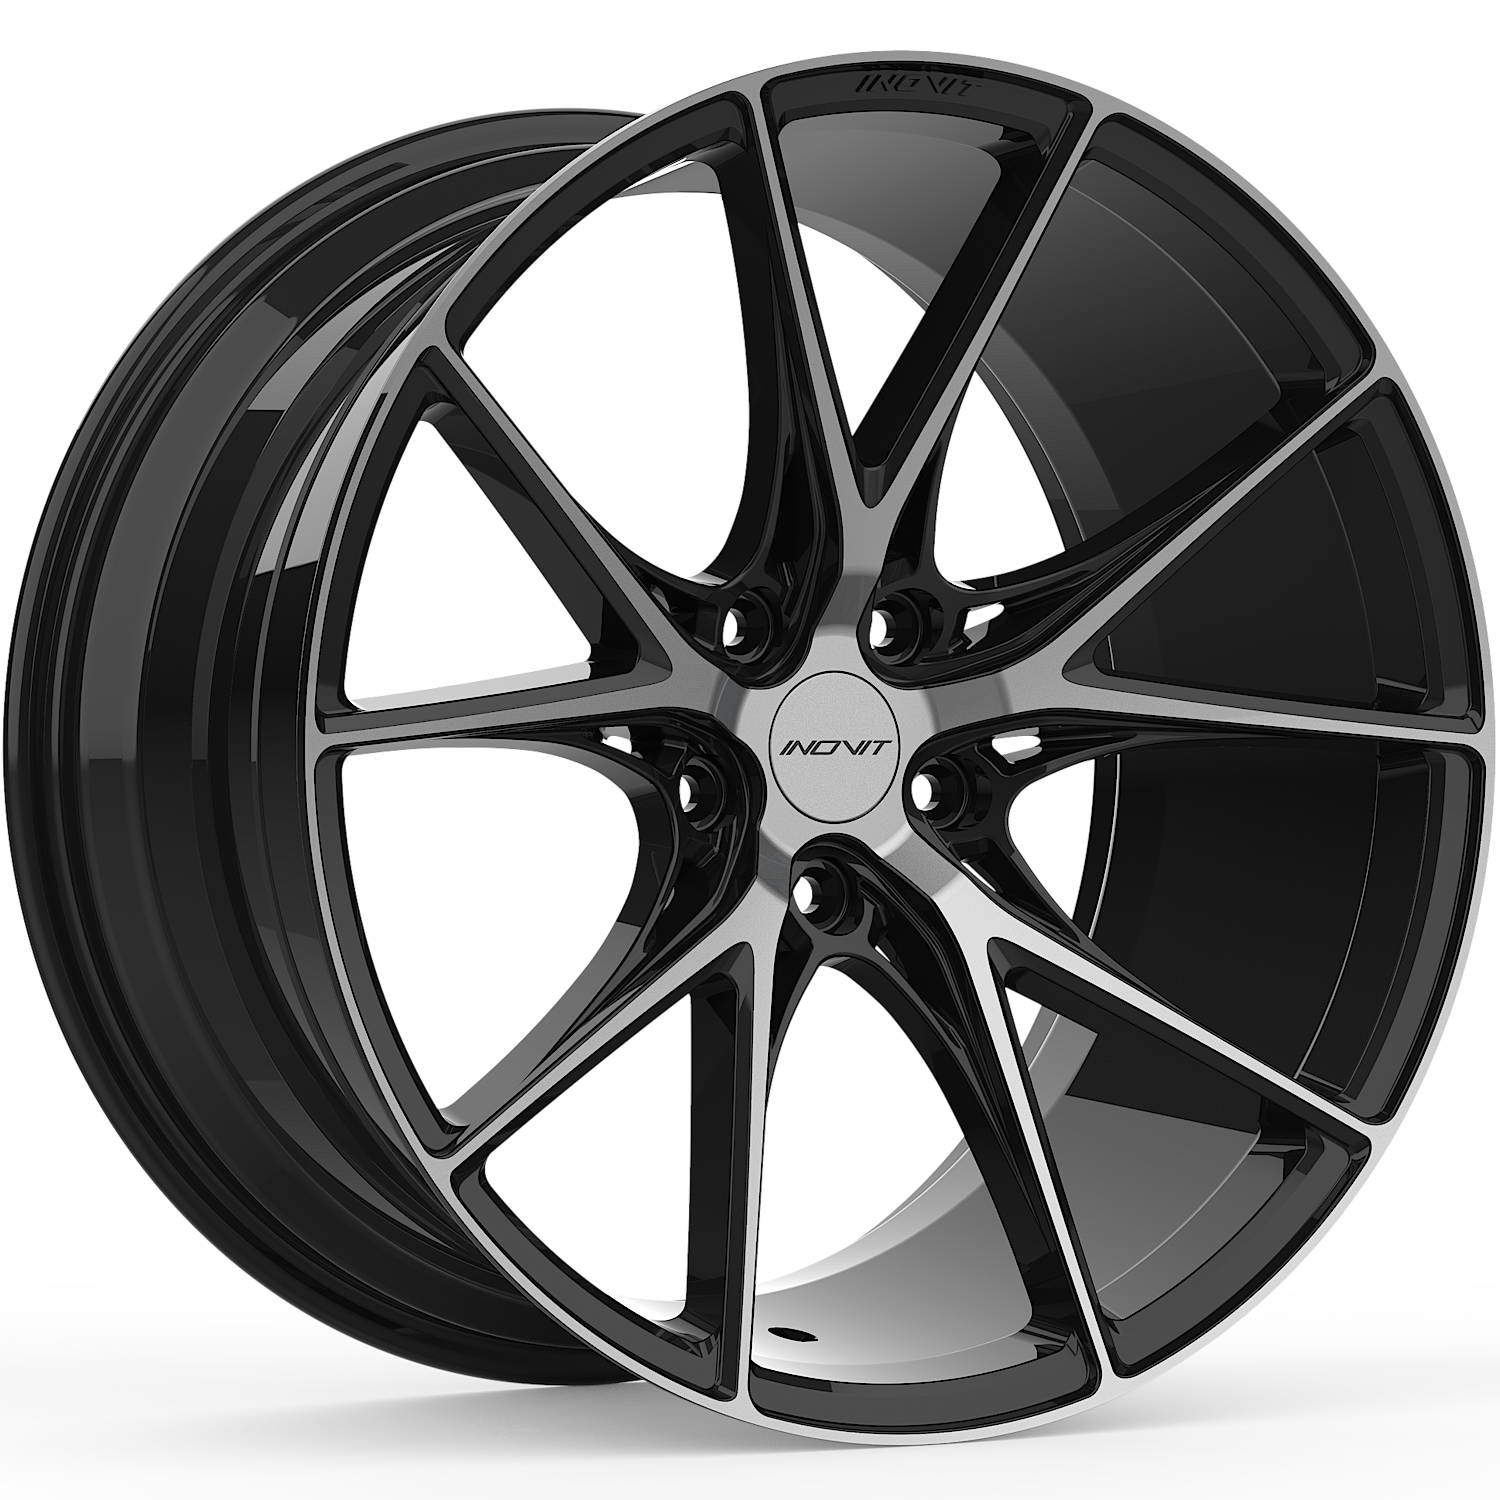 Inovit Speed Satin Black with Machined Spoke Faces and Dark Tint19x9.5 +40mm